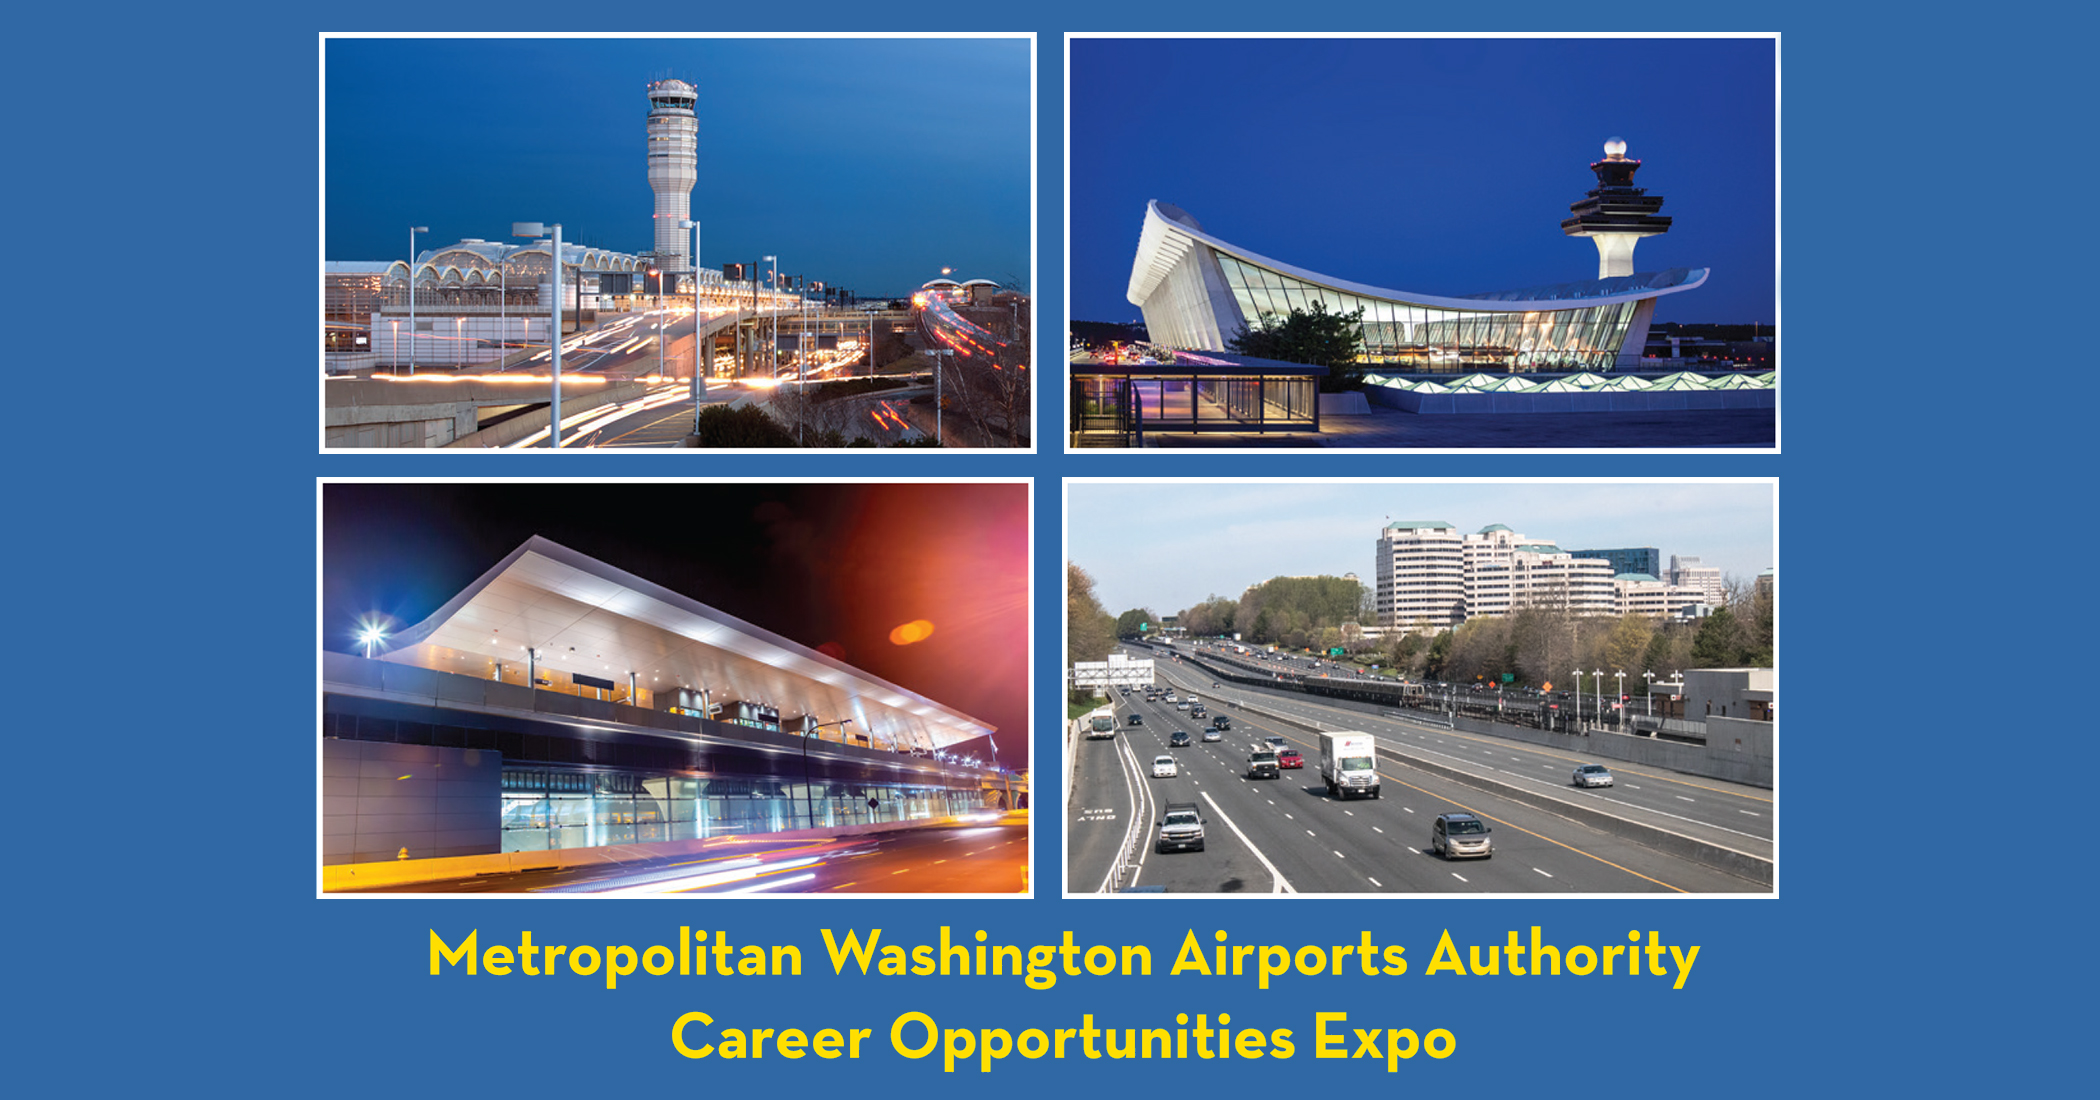 Metropolitan Washington Airports Authority Career Opportunities Expo, October 18, 2019